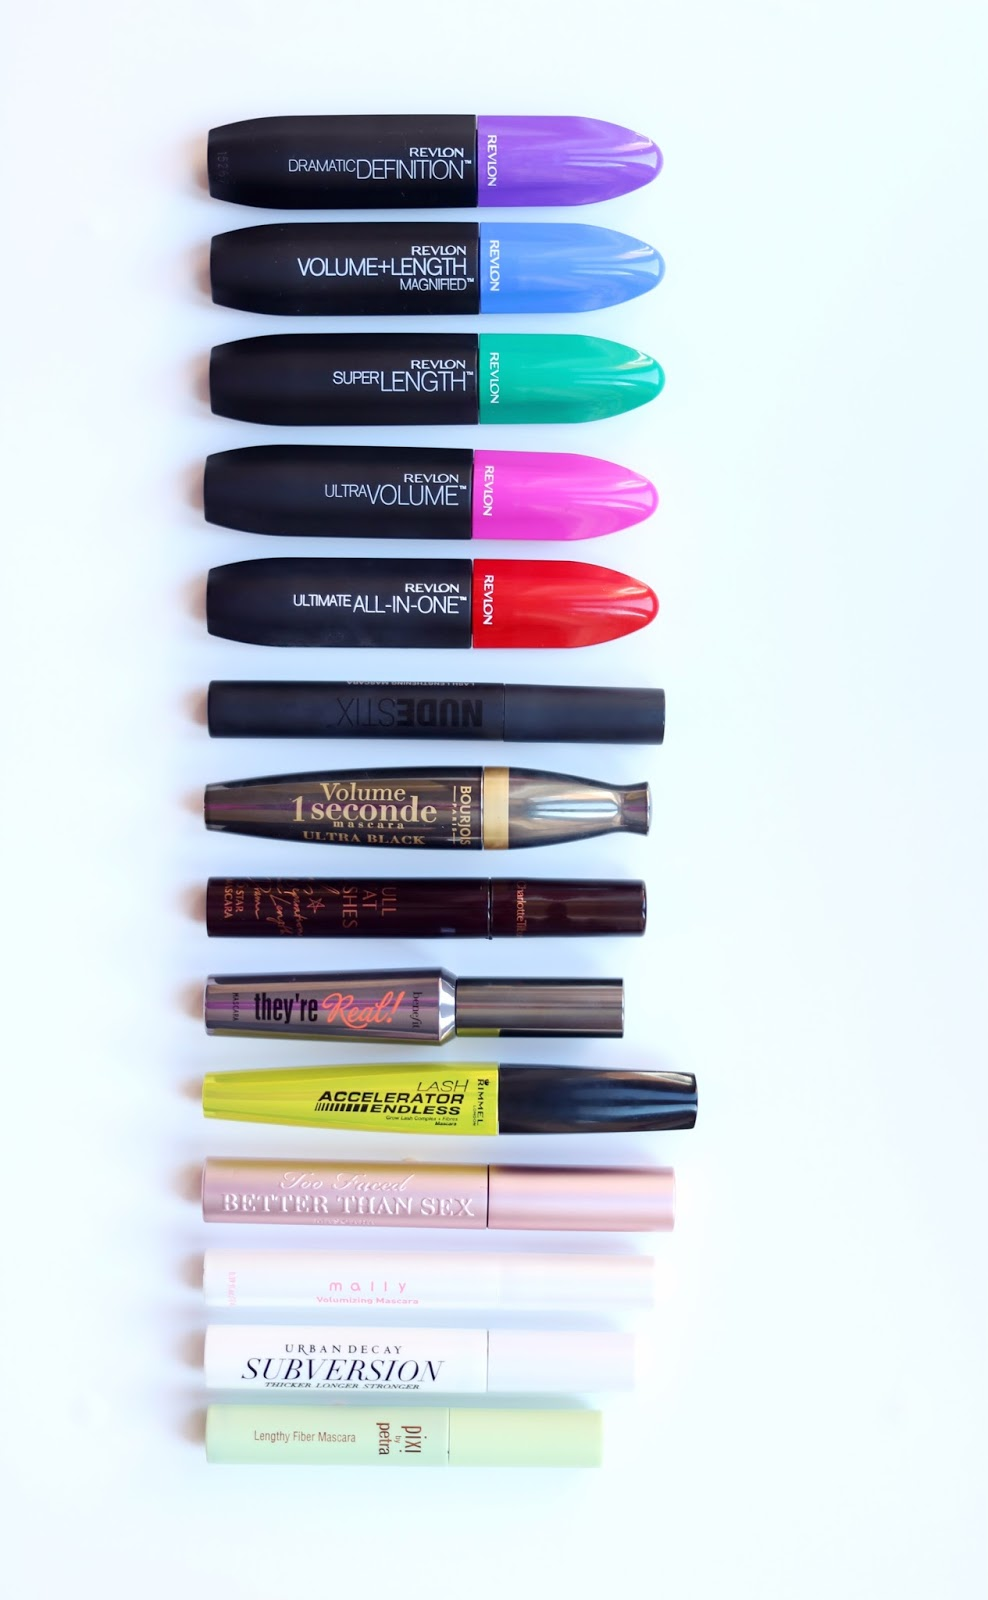 Mascara Collection